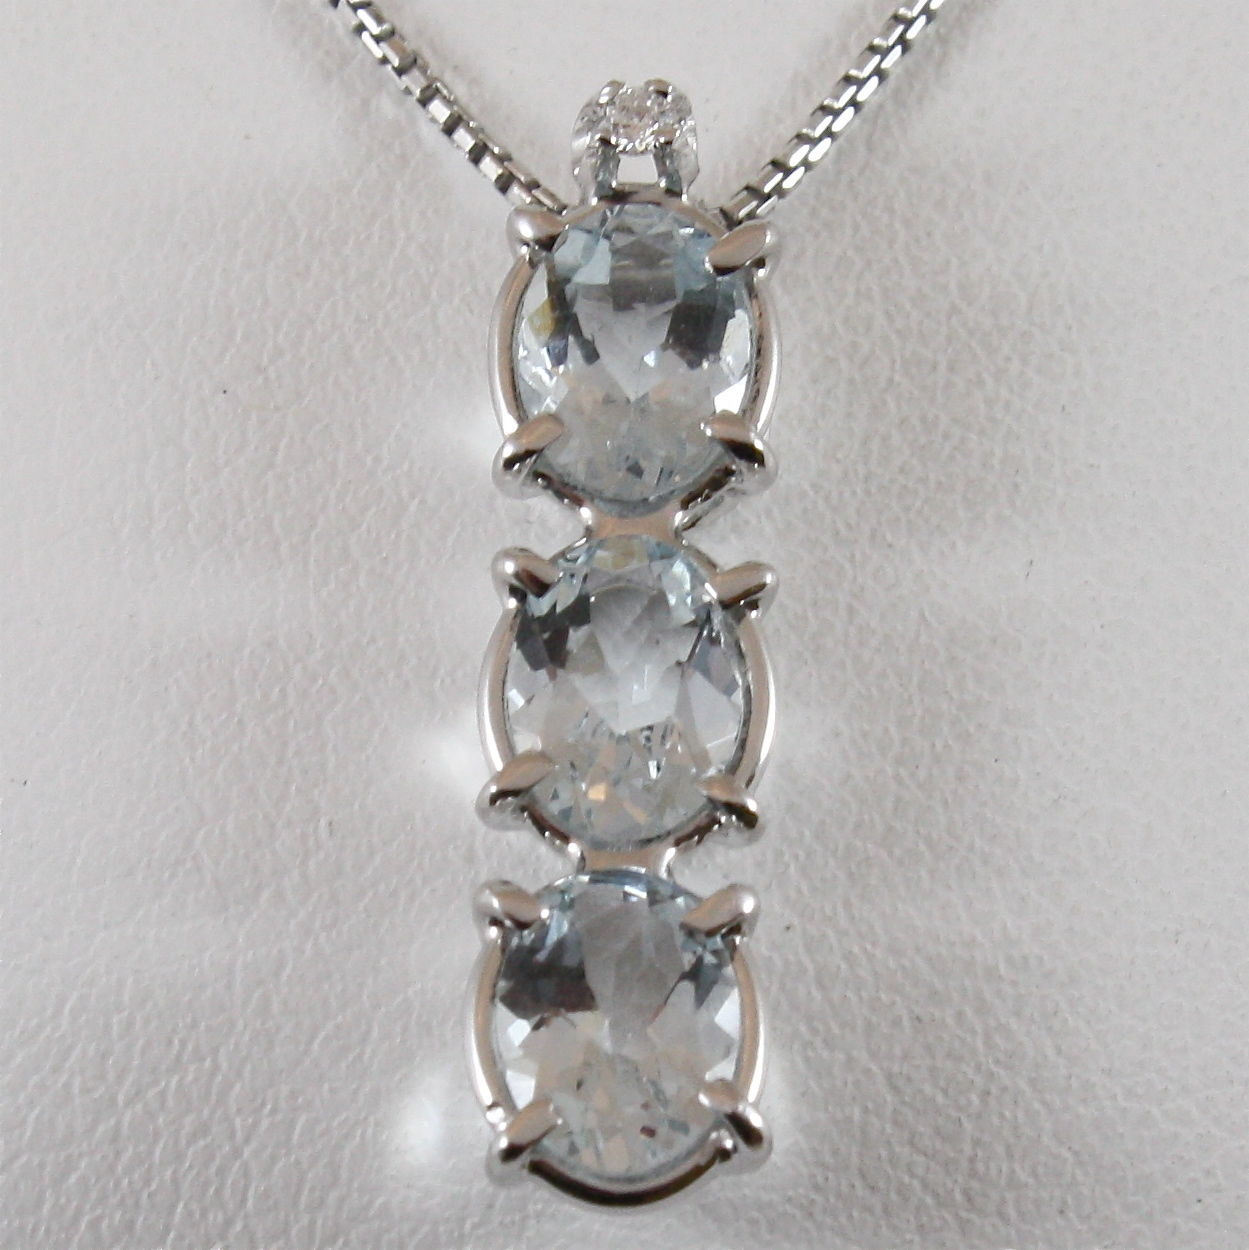 18K WHITE GOLD NECKLACE AQUAMARINE CT 2.50 PENDANT AND DIAMOND CT 0.02, ITALY